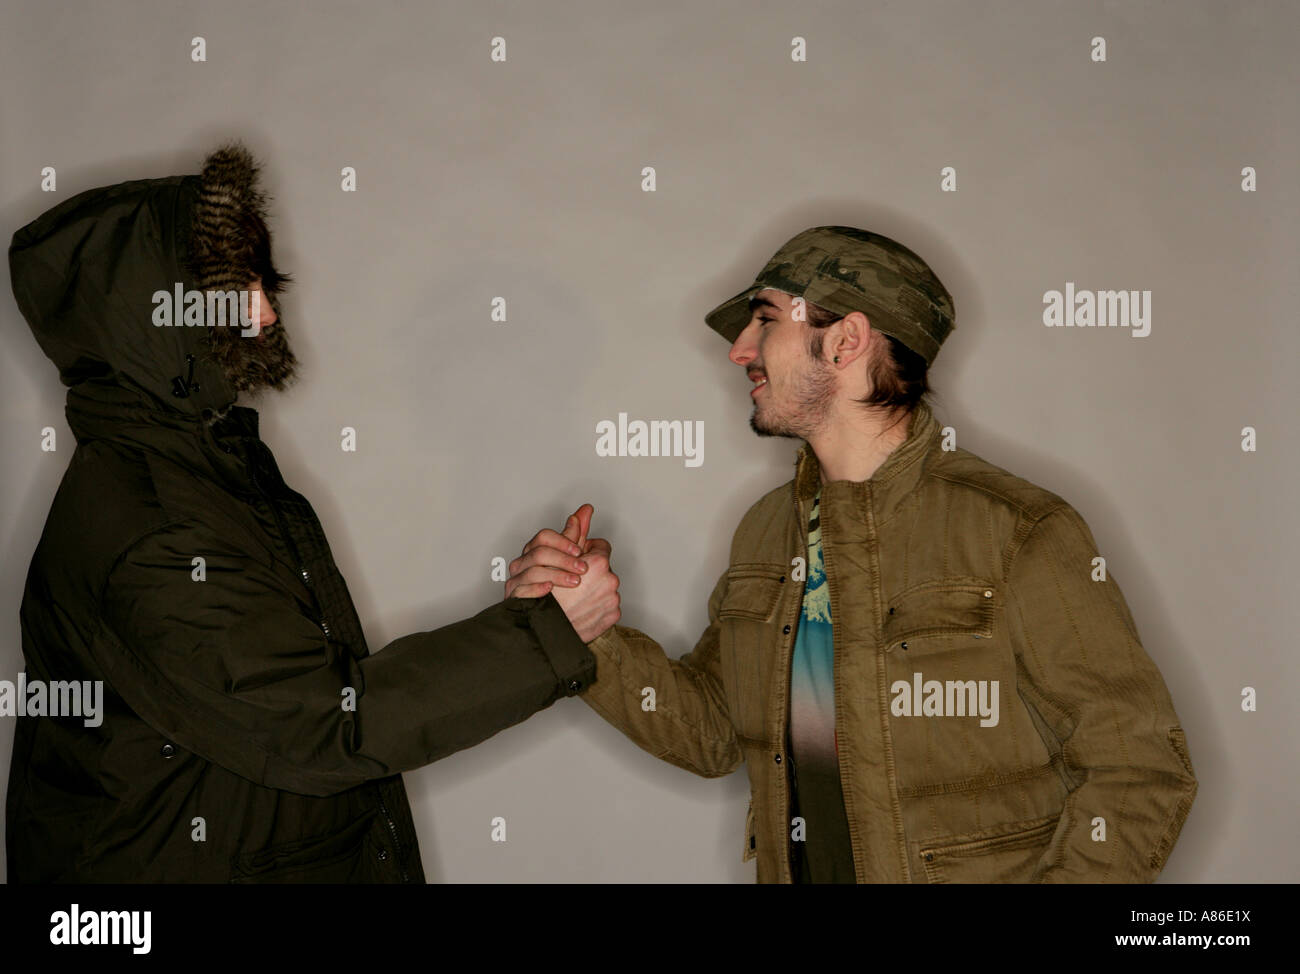 Two young men greeting each other - Stock Image